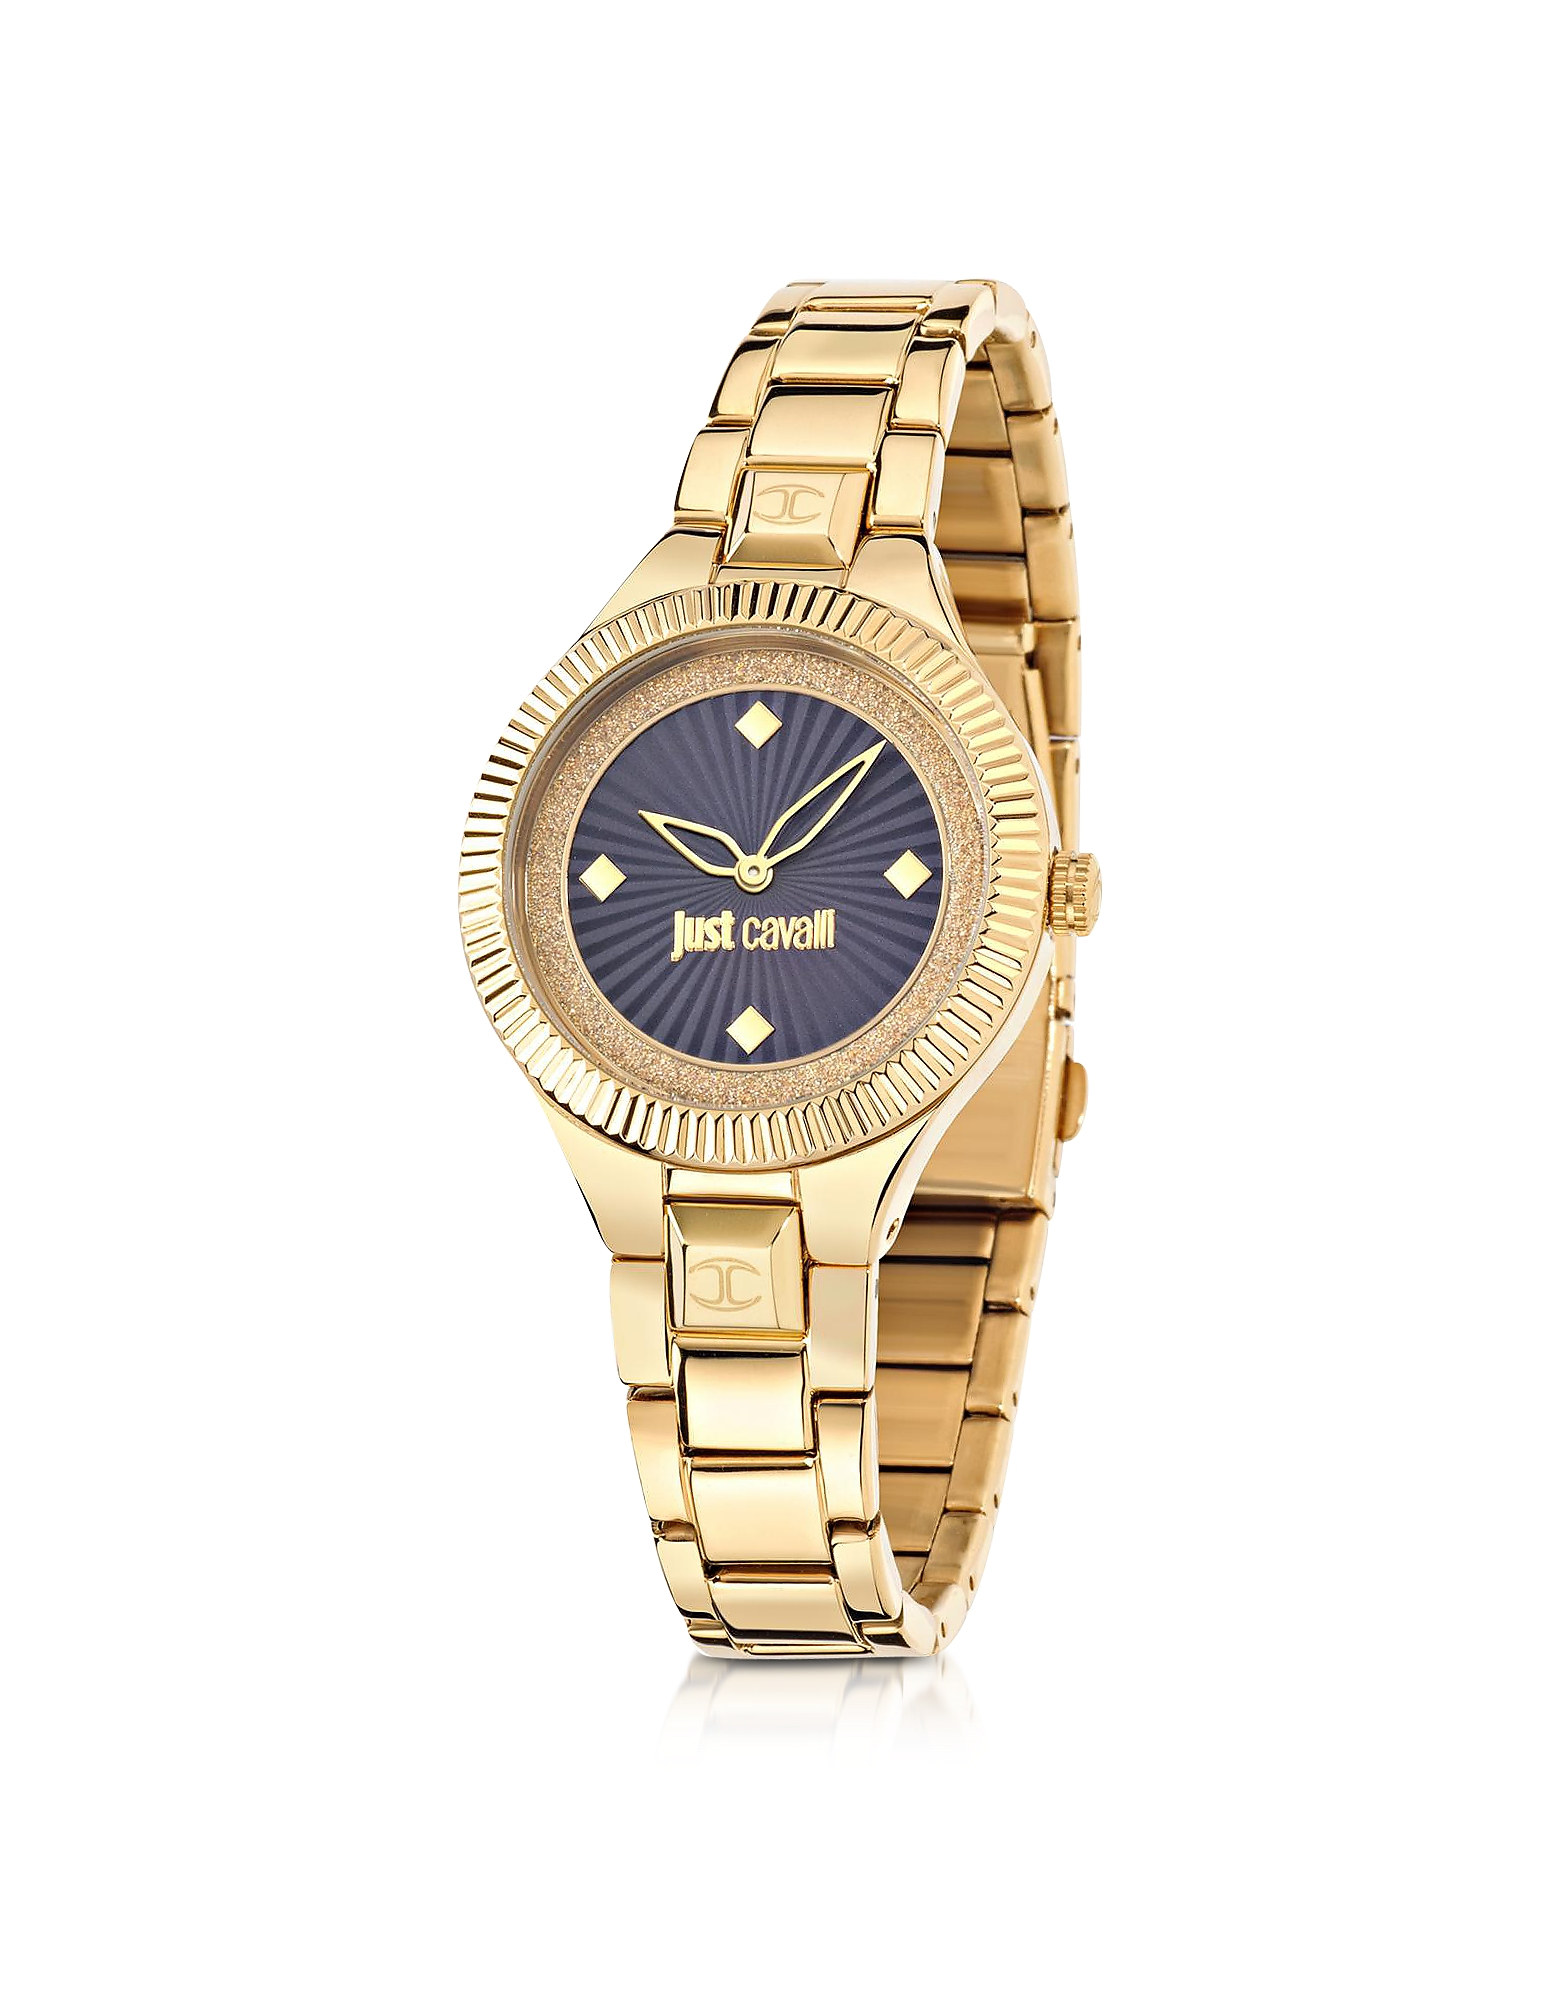 Just Cavalli Women's Watches, Just Indie Gold Tone Stainless Steel Women's Watch